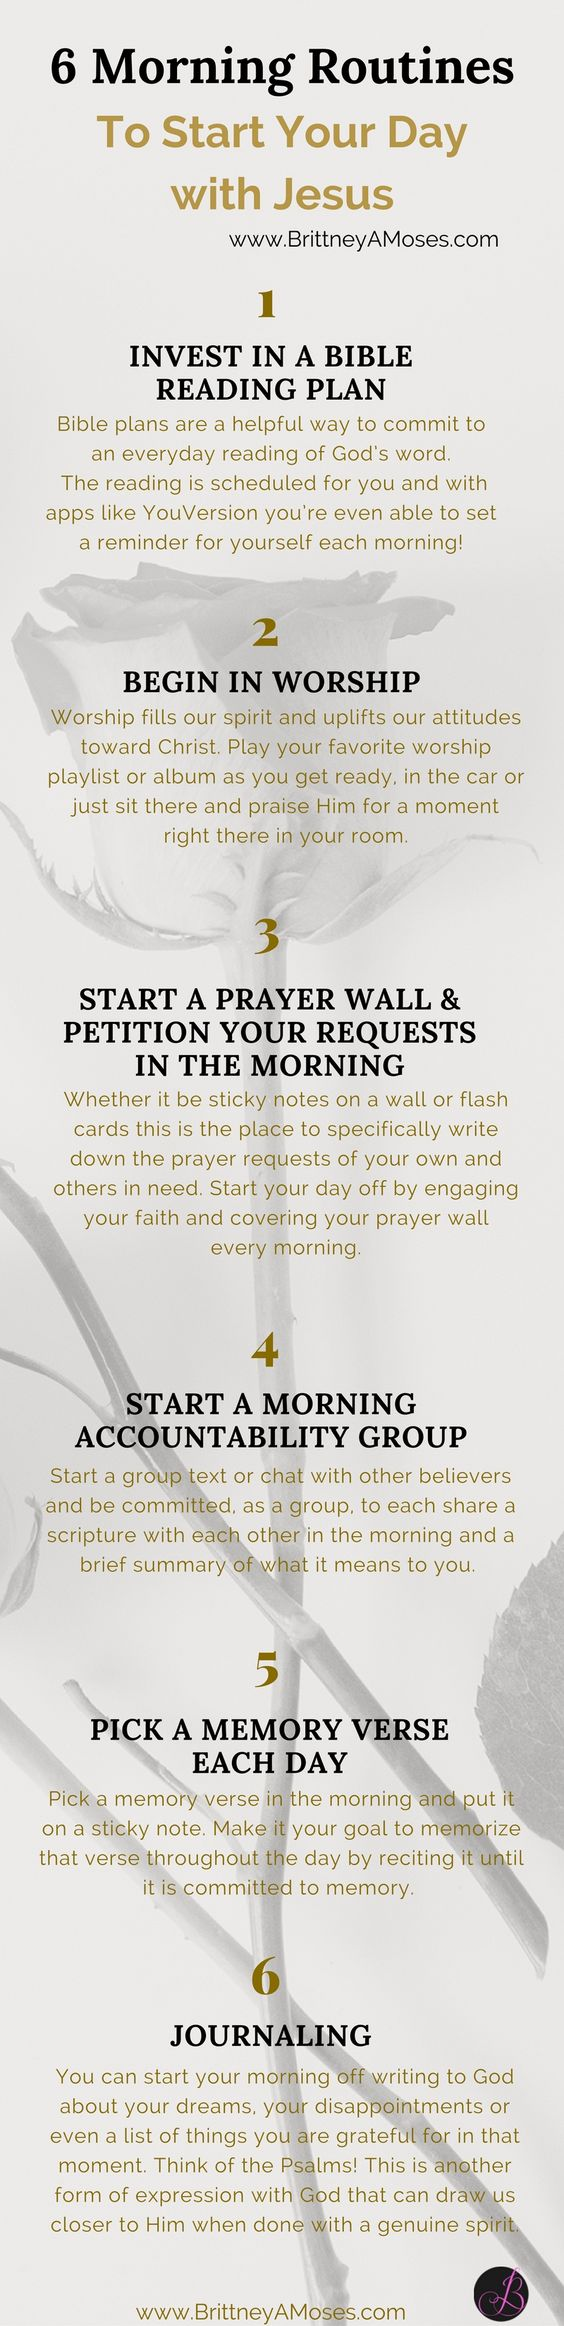 """READ: """"10 Morning Routines to Start Your Day with Jesus"""" -Brittney Moses"""